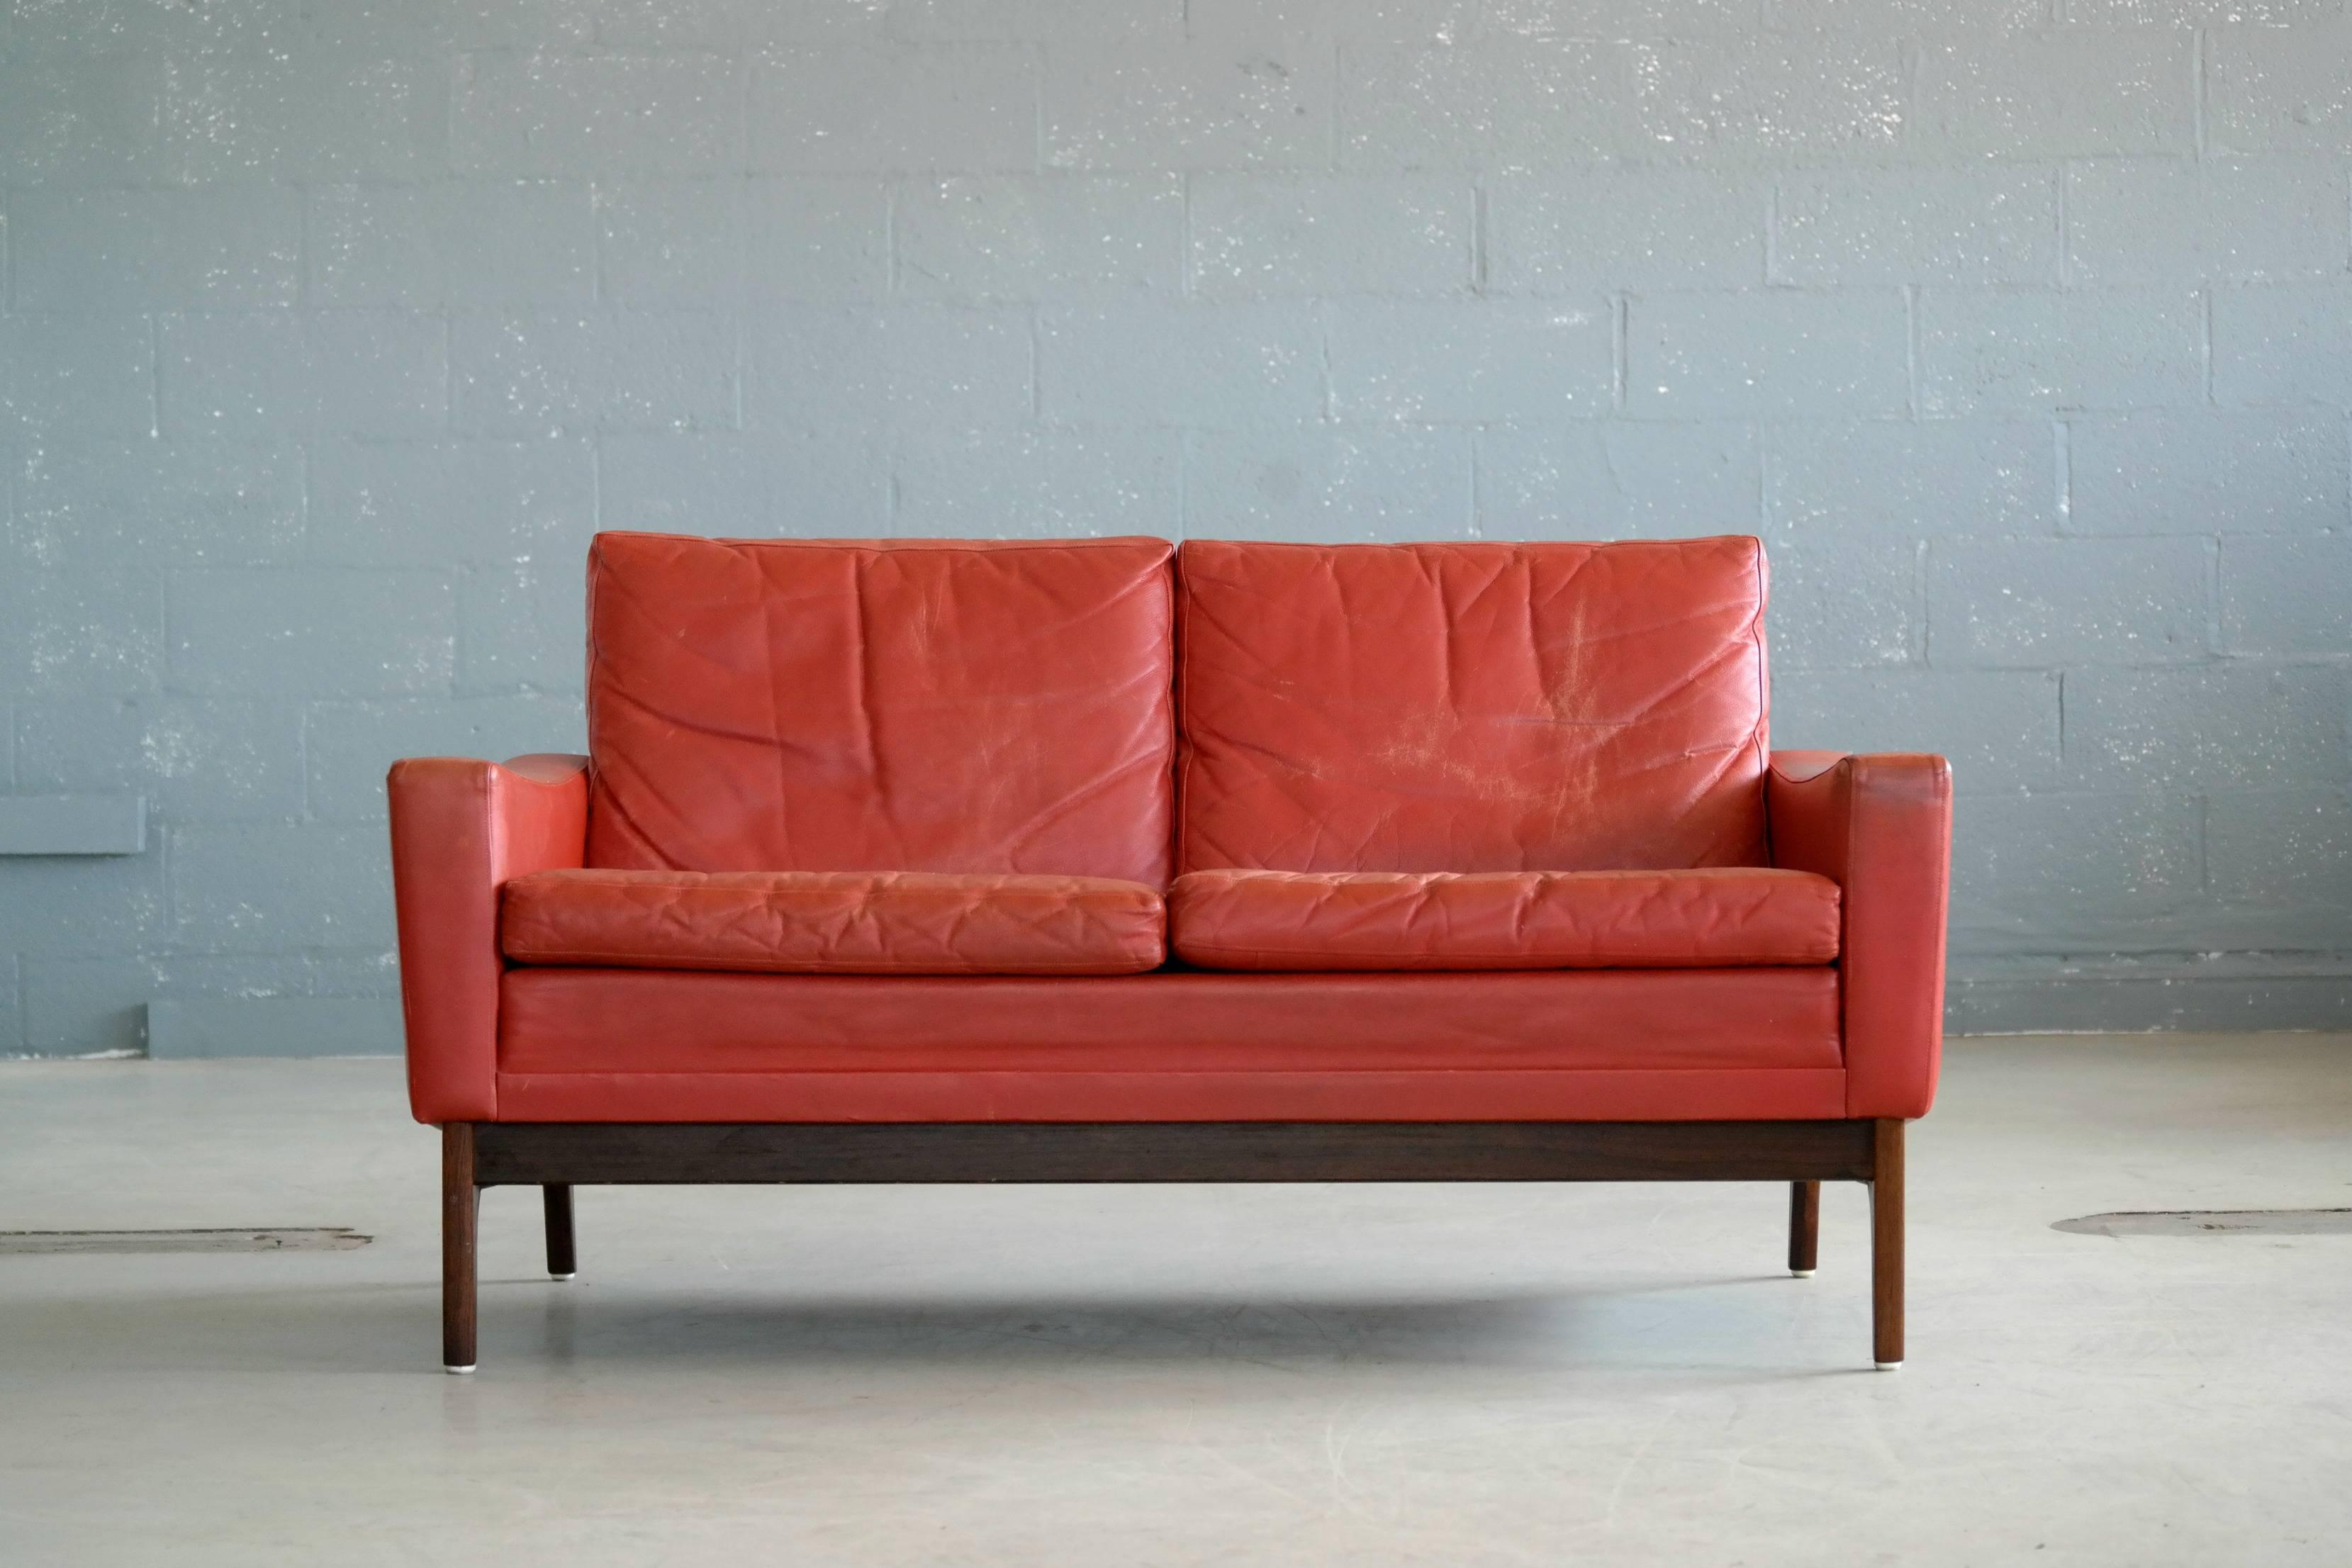 Sophisticated Classic Danish Mid Century Modern Sofa In Red Leather